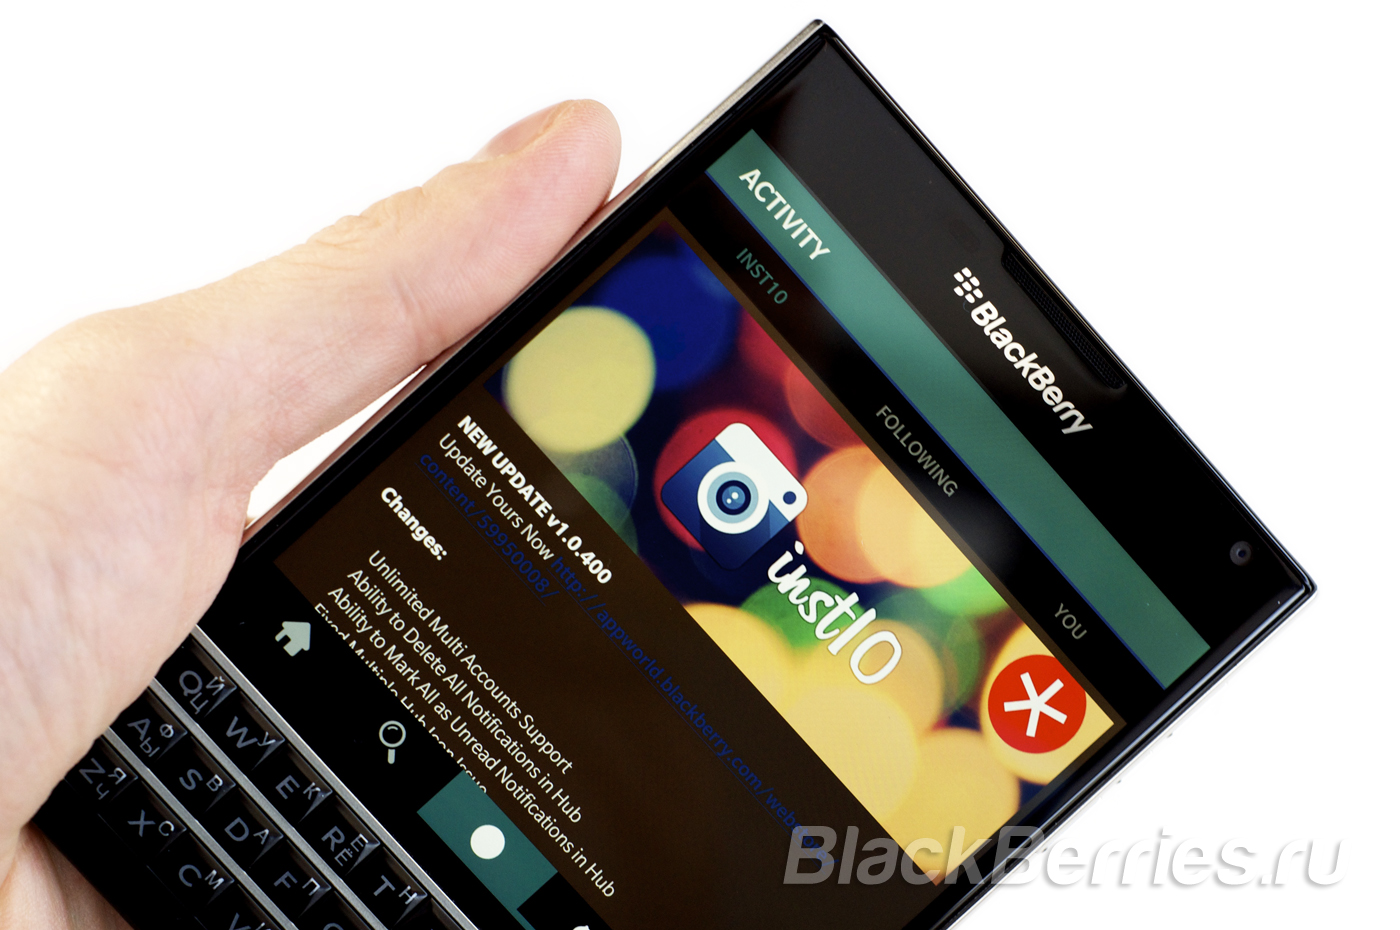 BlackBerry-Passport-Inst10-1-400-2